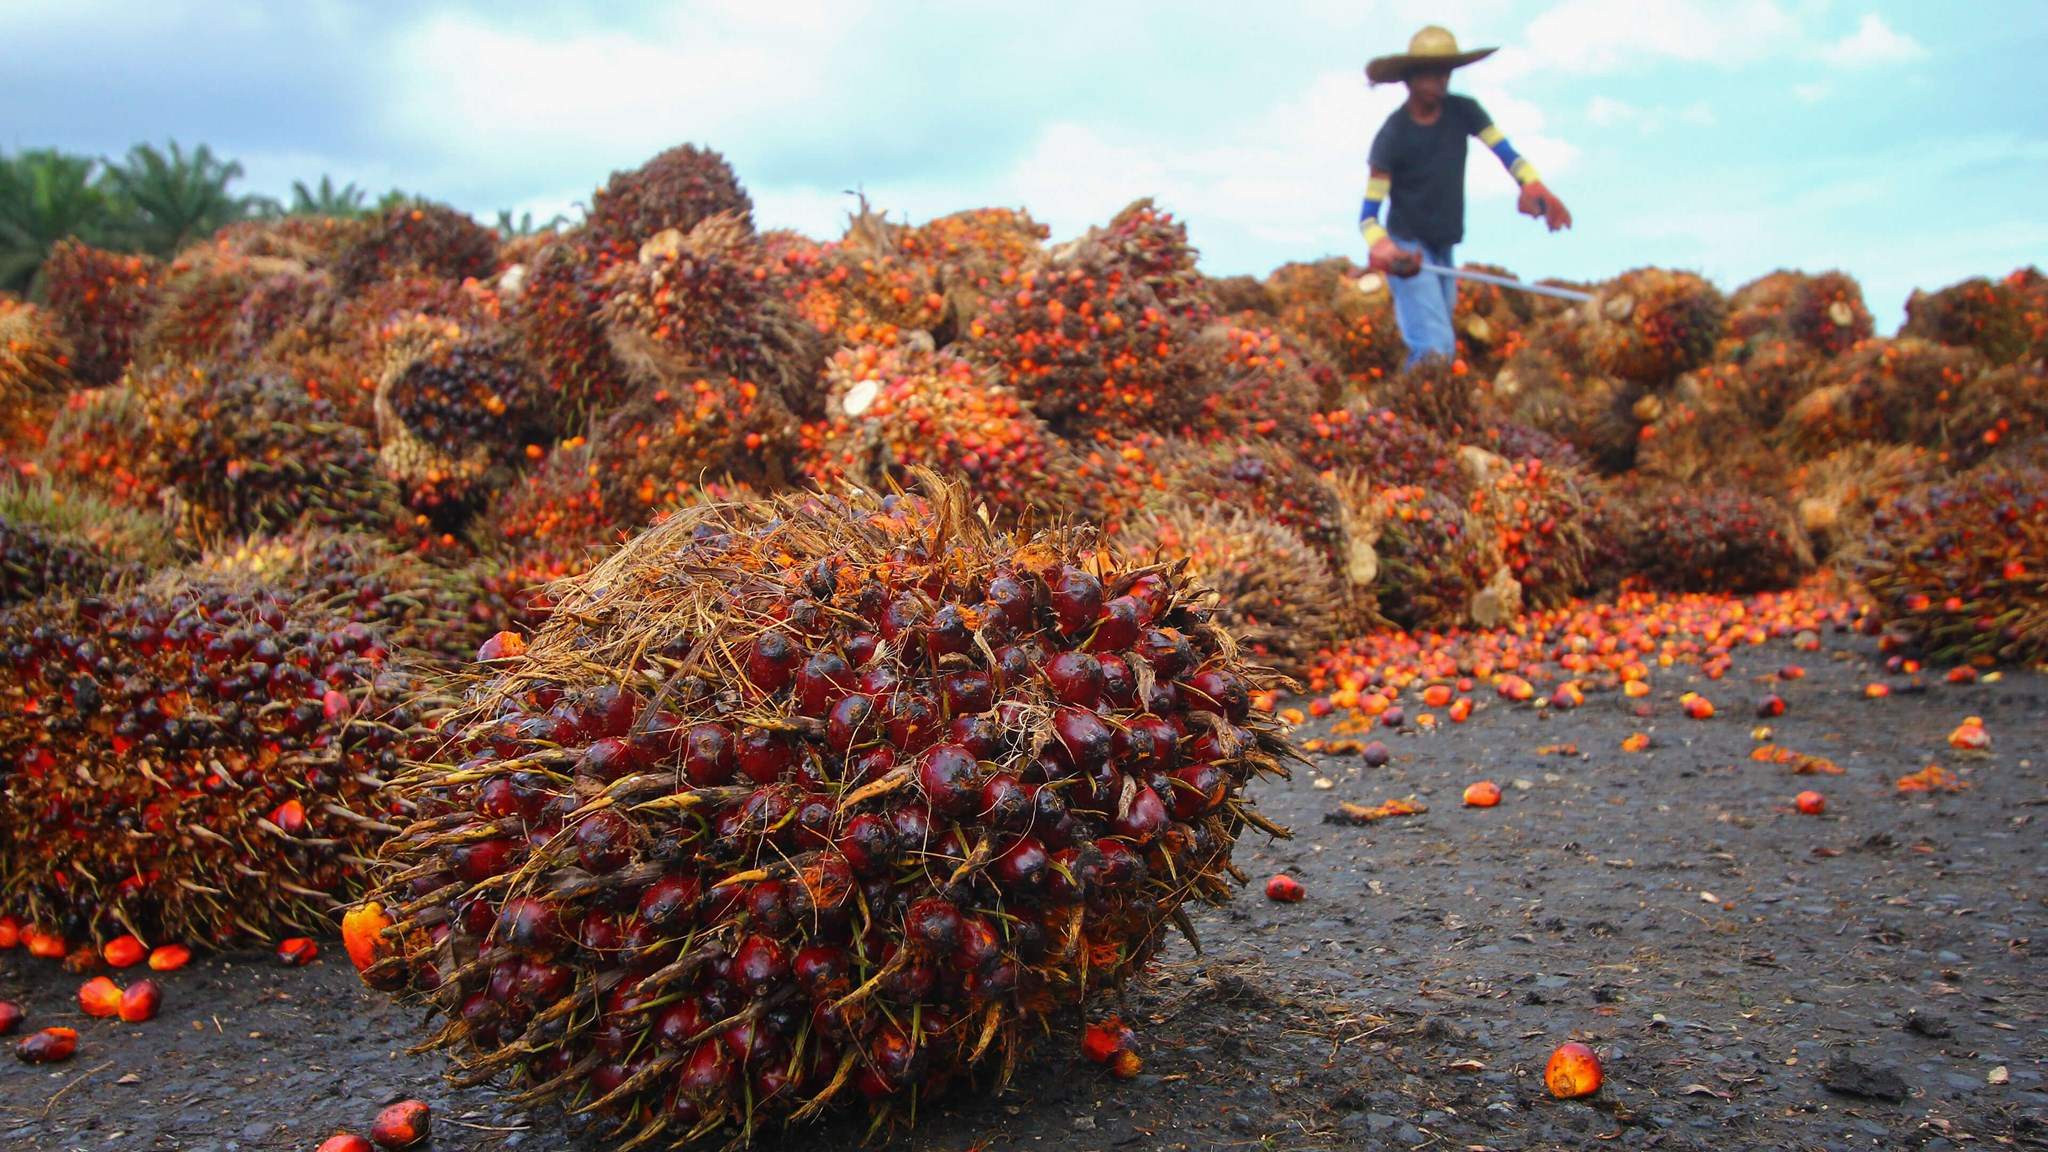 Palsgaards Responsible Sourcing Programme Enures Better Working Conditions For Palm Oil Plantation Workers